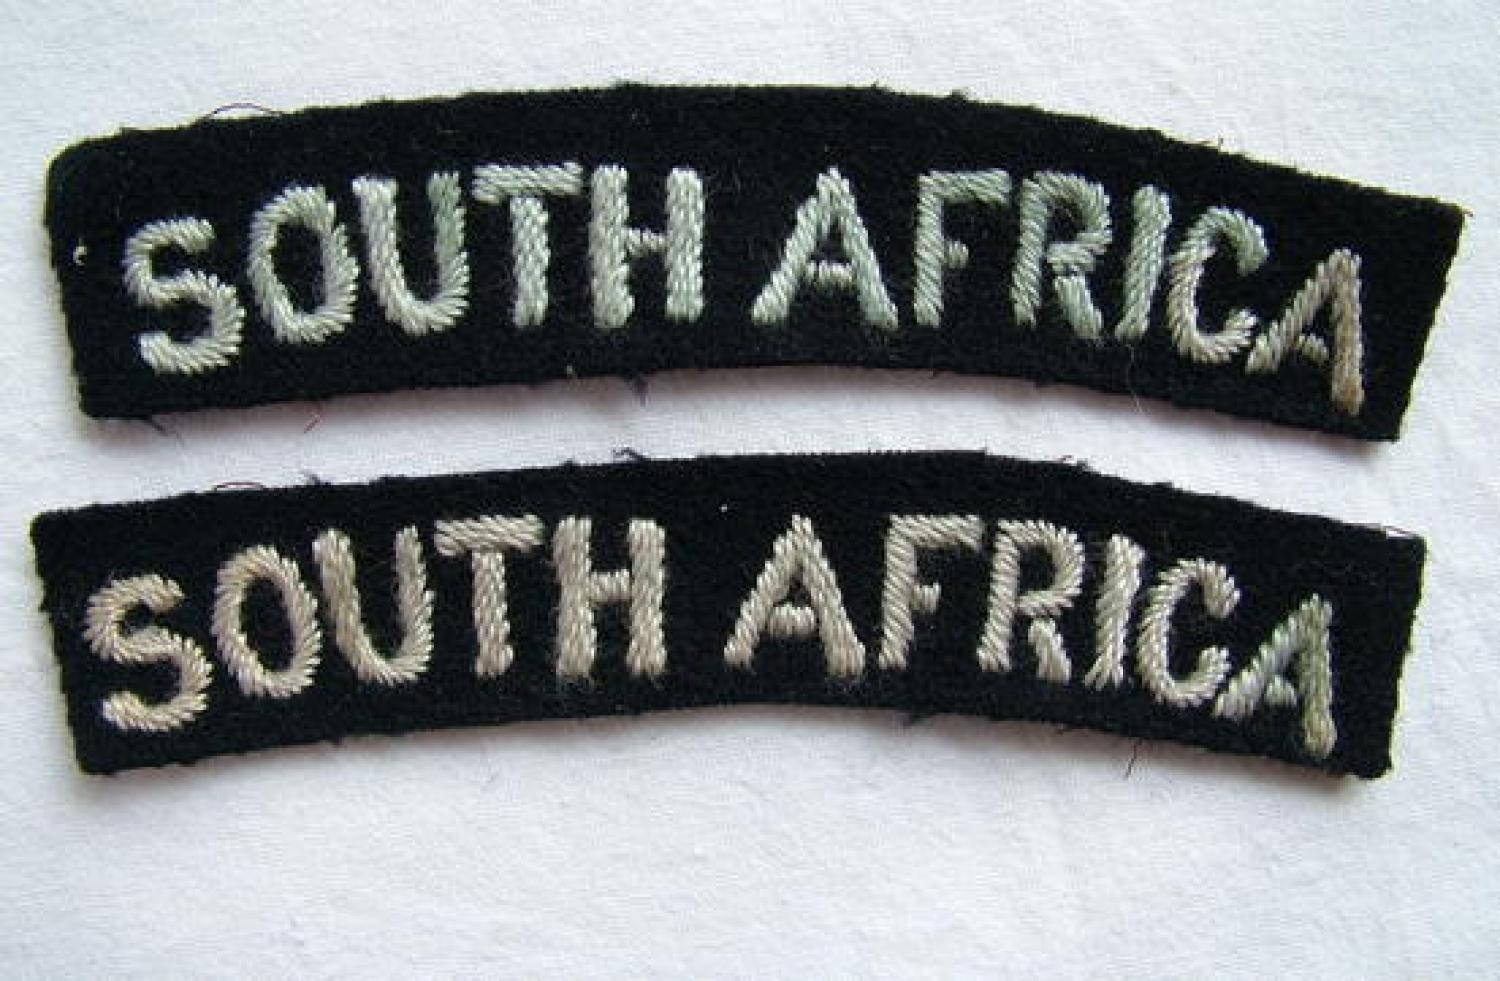 R.A.F. 'South Africa' Nationality Titles